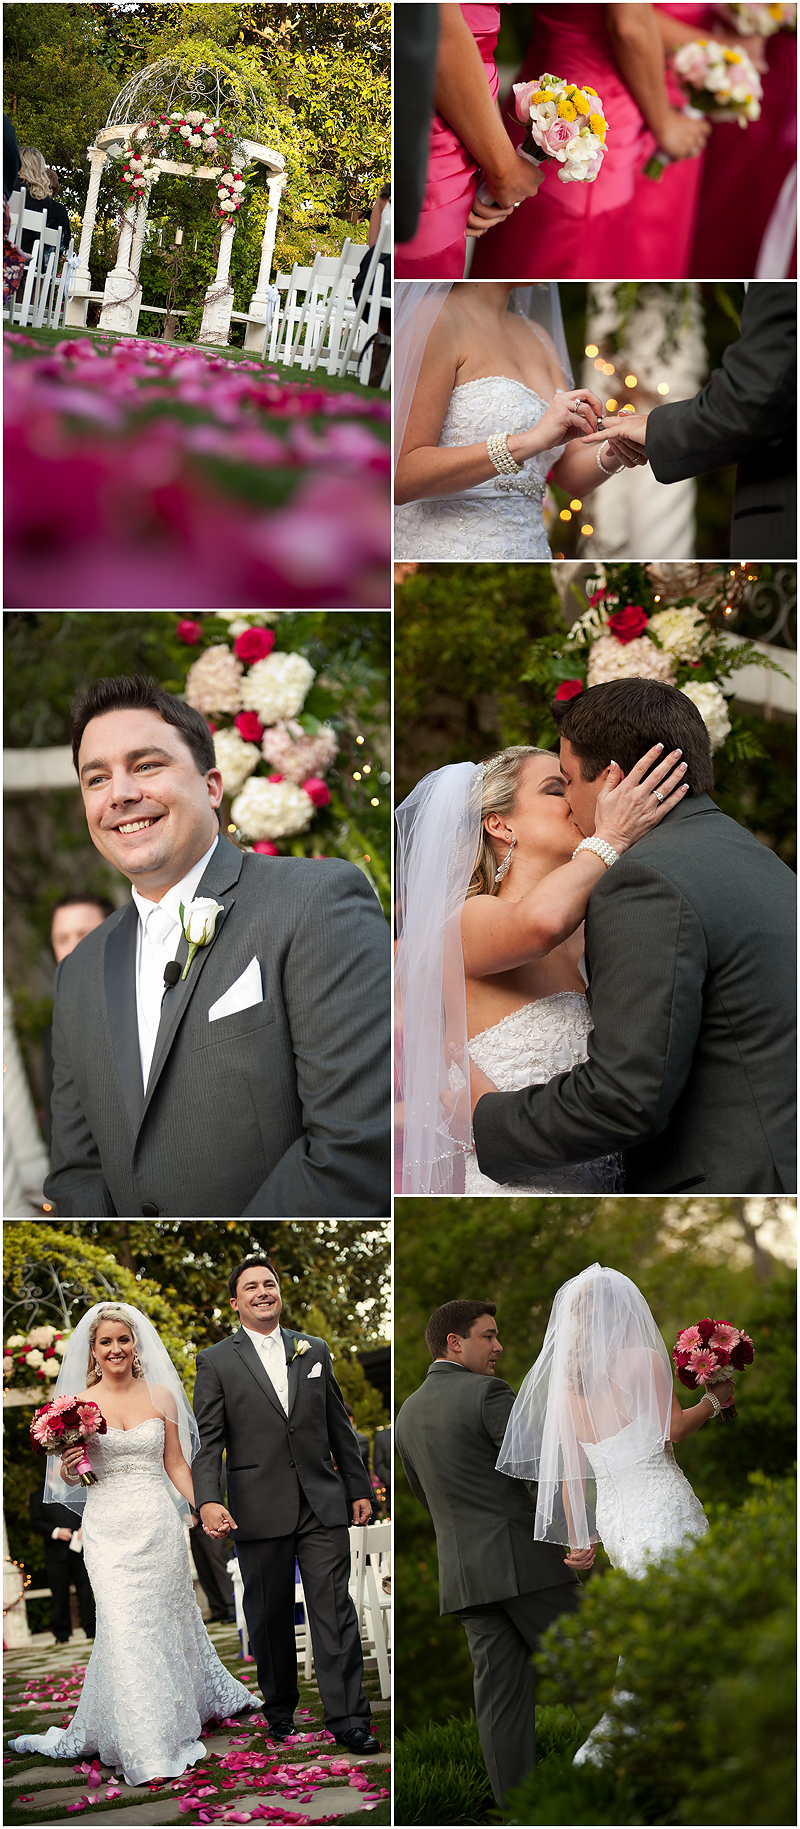 Greenlaw Griffin Wedding4 web Norcross, GA | BerryTree Photography | Jesse & L'Shea! – Married at The Atrium